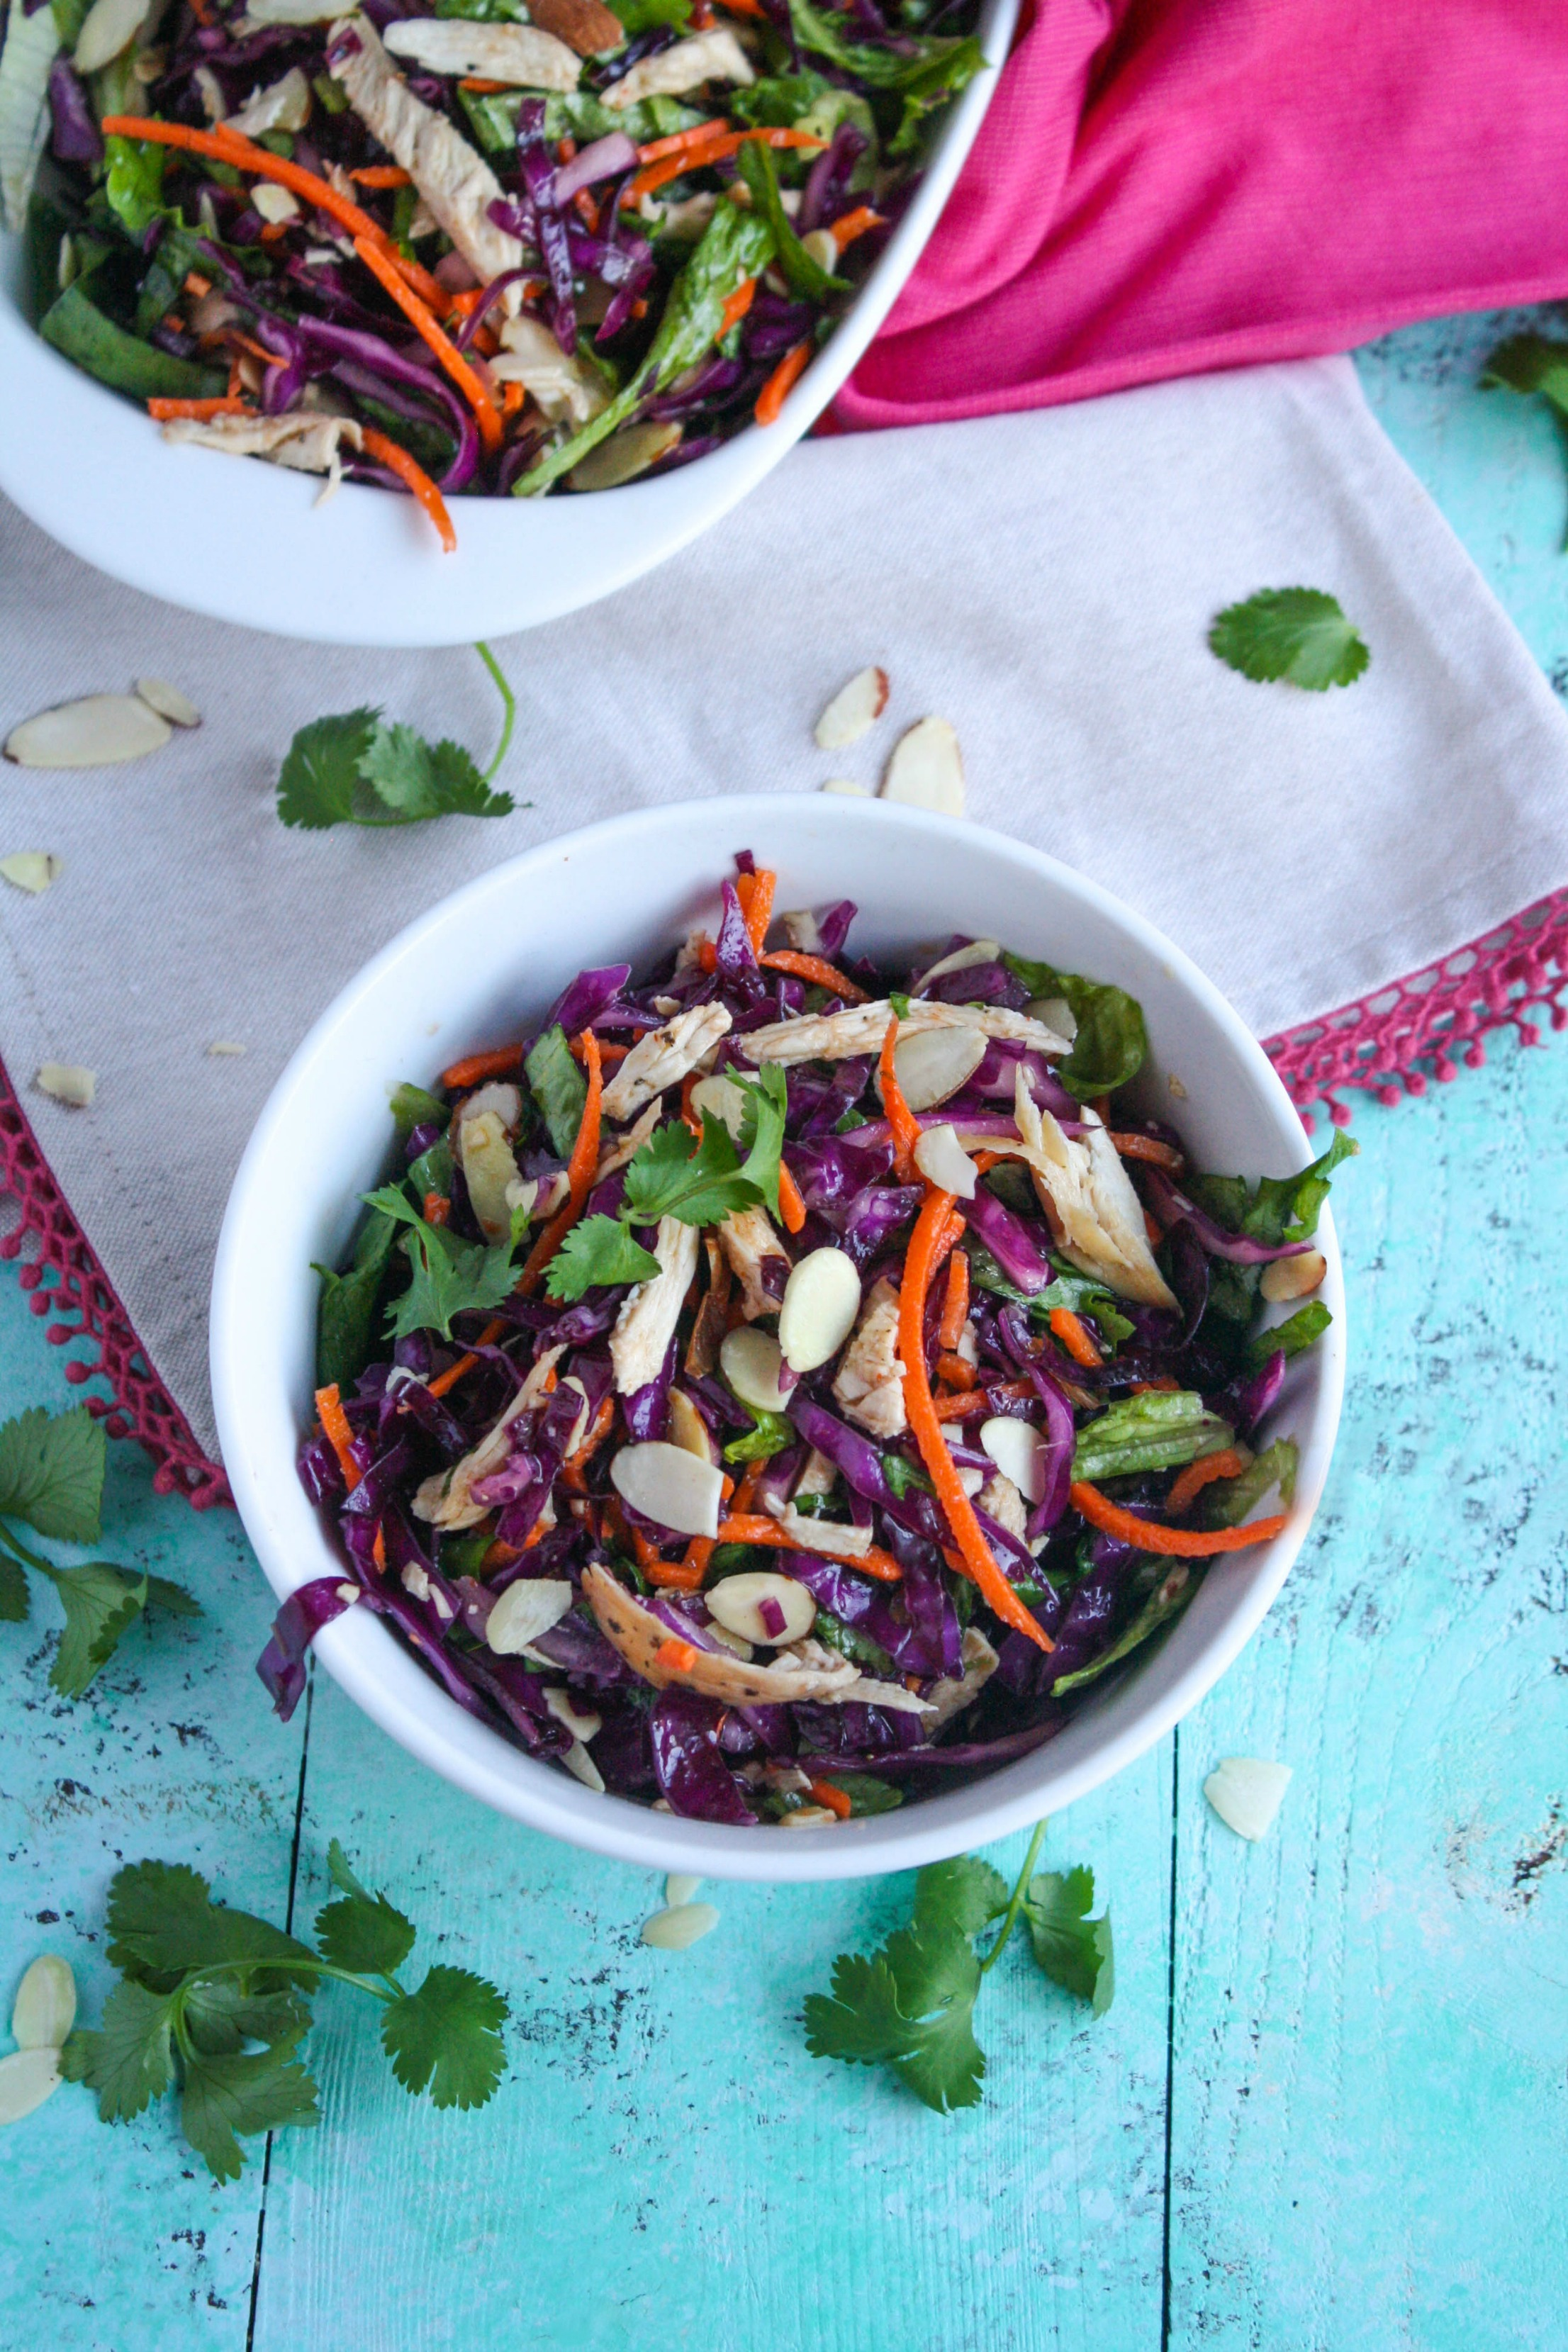 Crunchy Cabbage & Chicken Salad with Sesame Dressing is a crunchy, colorful treat. This cabbage salad is wonderful when you need something delicious in your life!